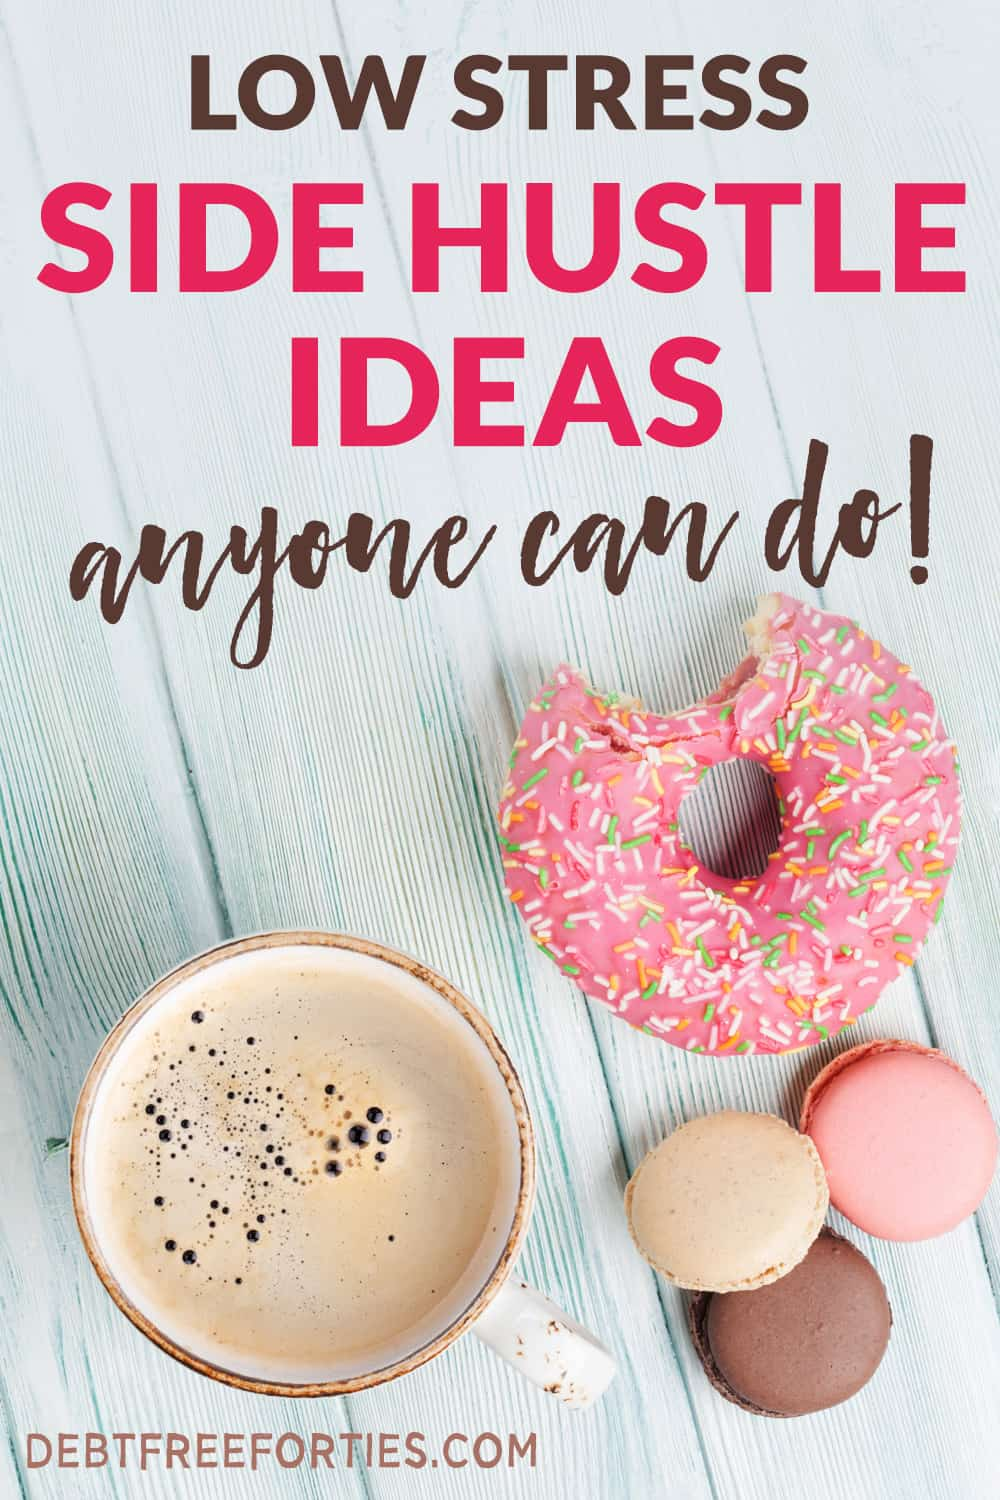 Can't find a great side hustle that's low stress? Use these side hustle ideas to find one that fits your schedule and pays you well! #sidehustle #sidegig #financialfreedom #debt #debtrepayment